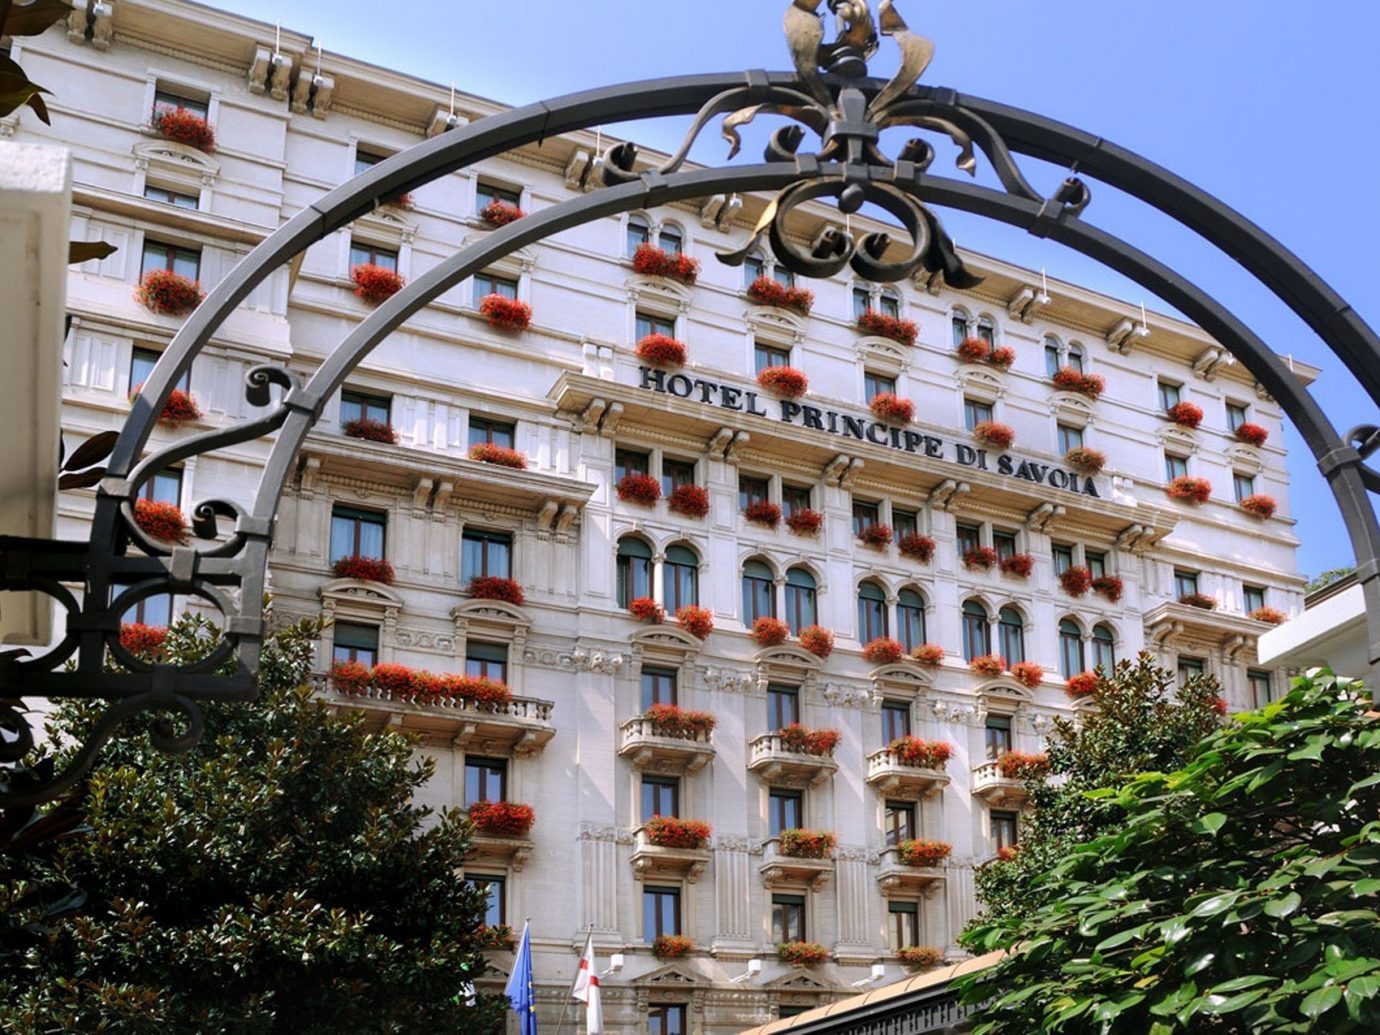 building Elegant entrance Exterior extravagant fancy gate Greenery Hotels Luxury Luxury Travel regal sophisticated outdoor landmark Town Architecture plaza arch tourism Downtown facade palace